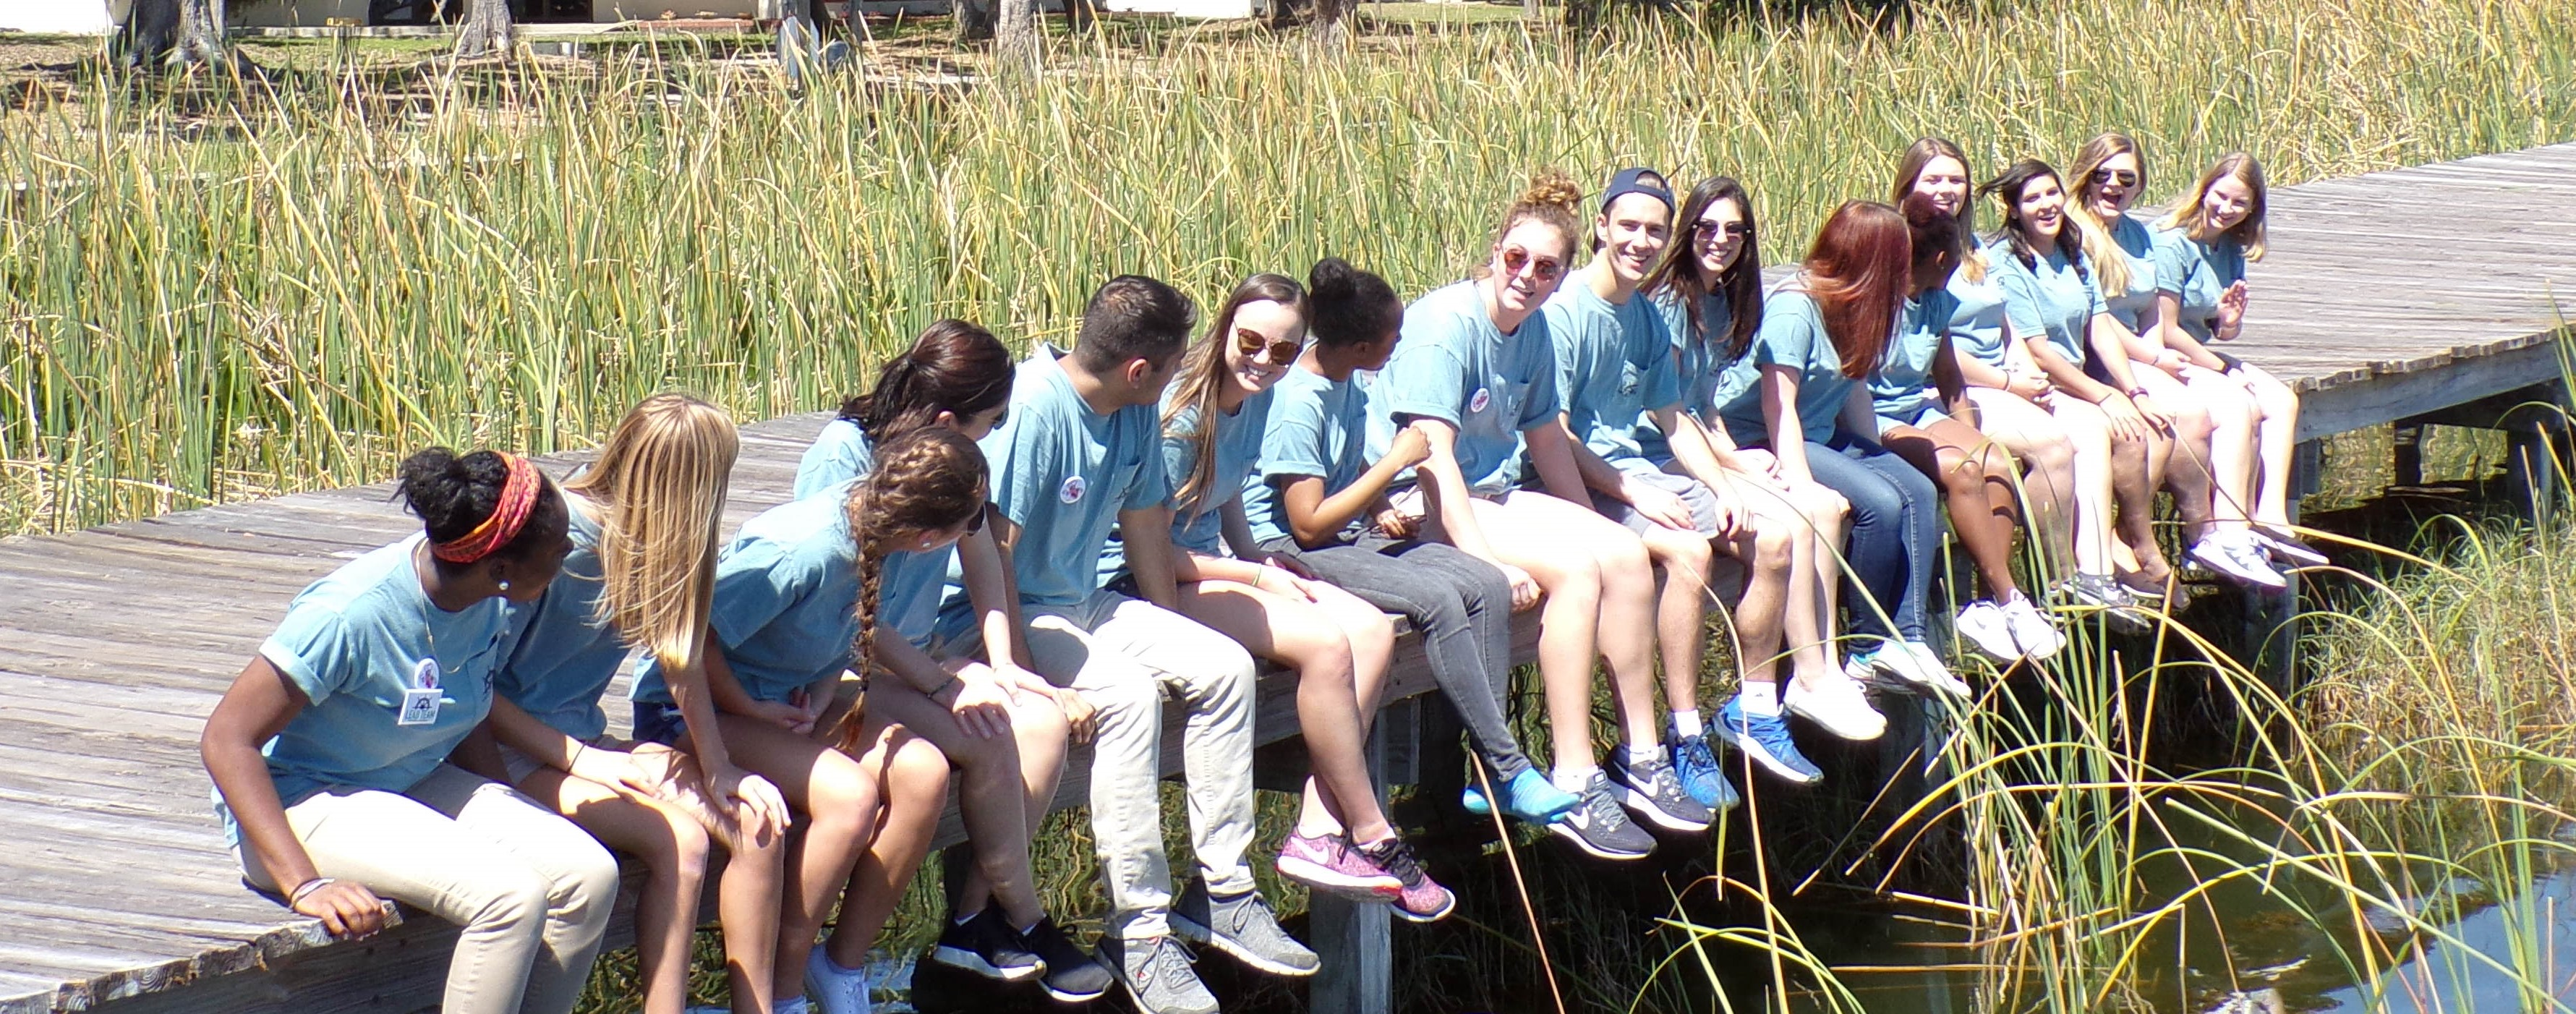 Sixteen students wearing blue shirts sitting on a dock laughing and talking